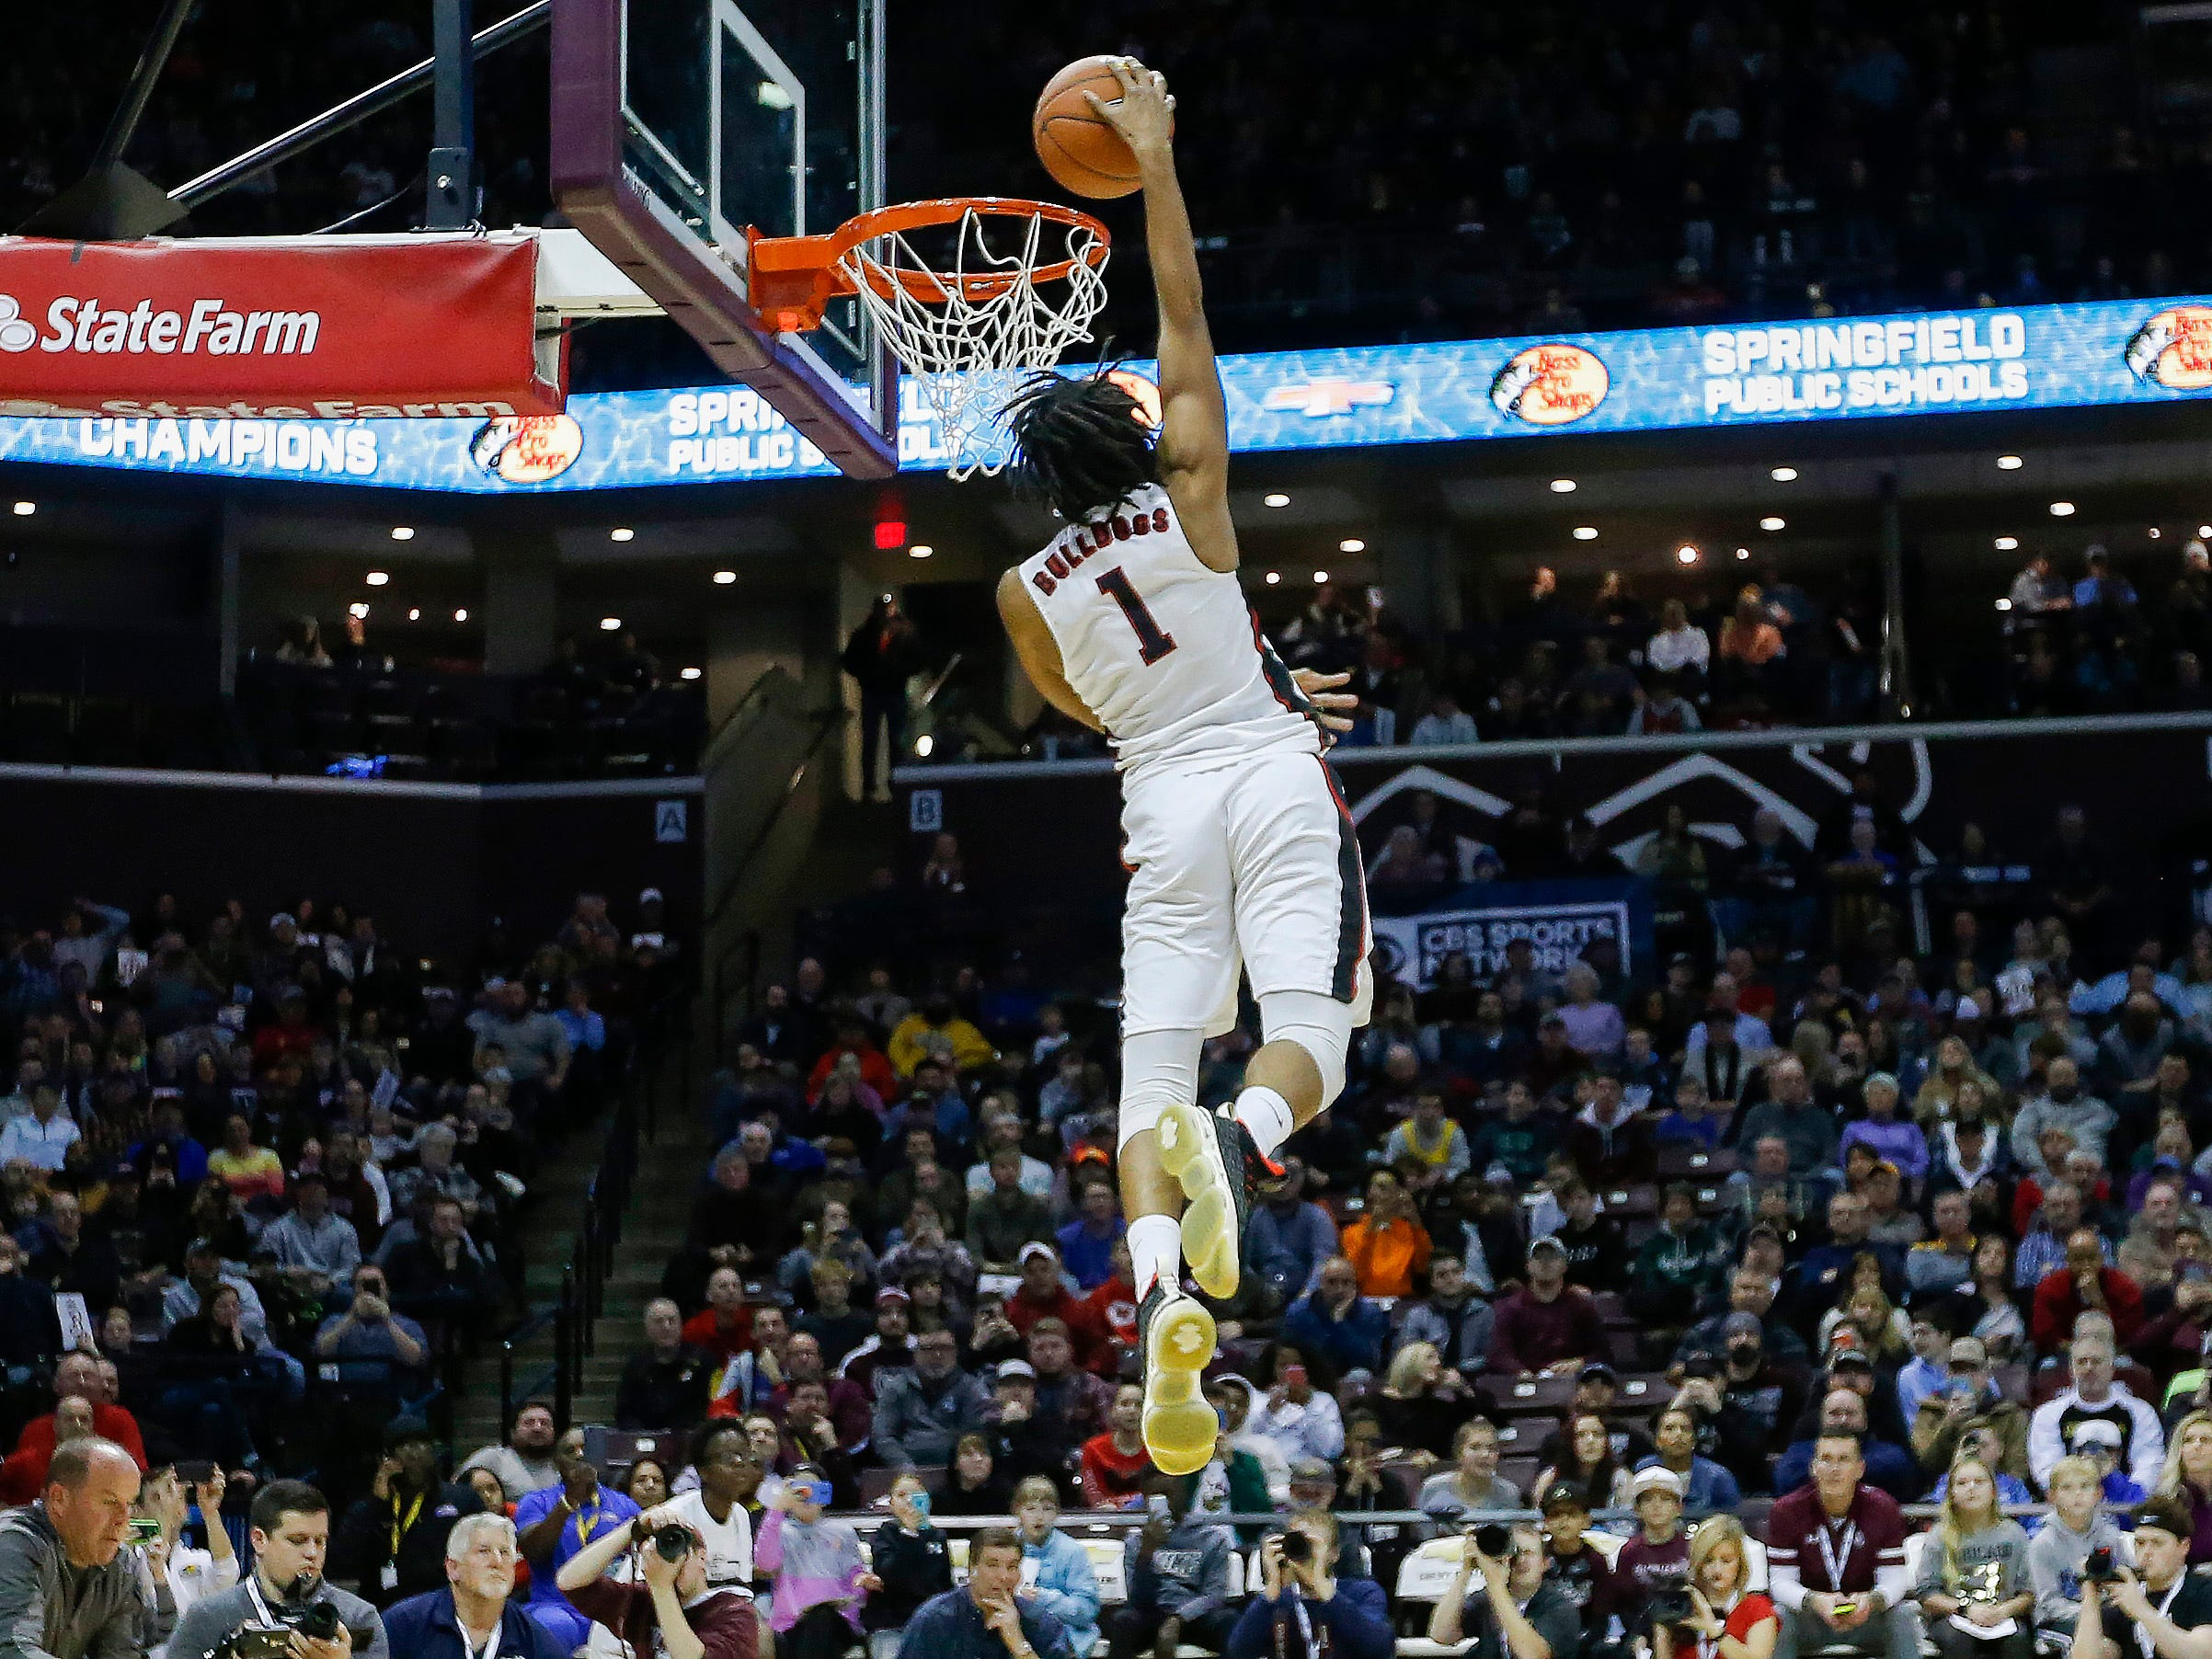 Donte Reese, of Central High School, competes in the slam dunk contest at the Bass Pro Shops Tournament of Champions at JQH Arena on Saturday, Jan. 19, 2019.